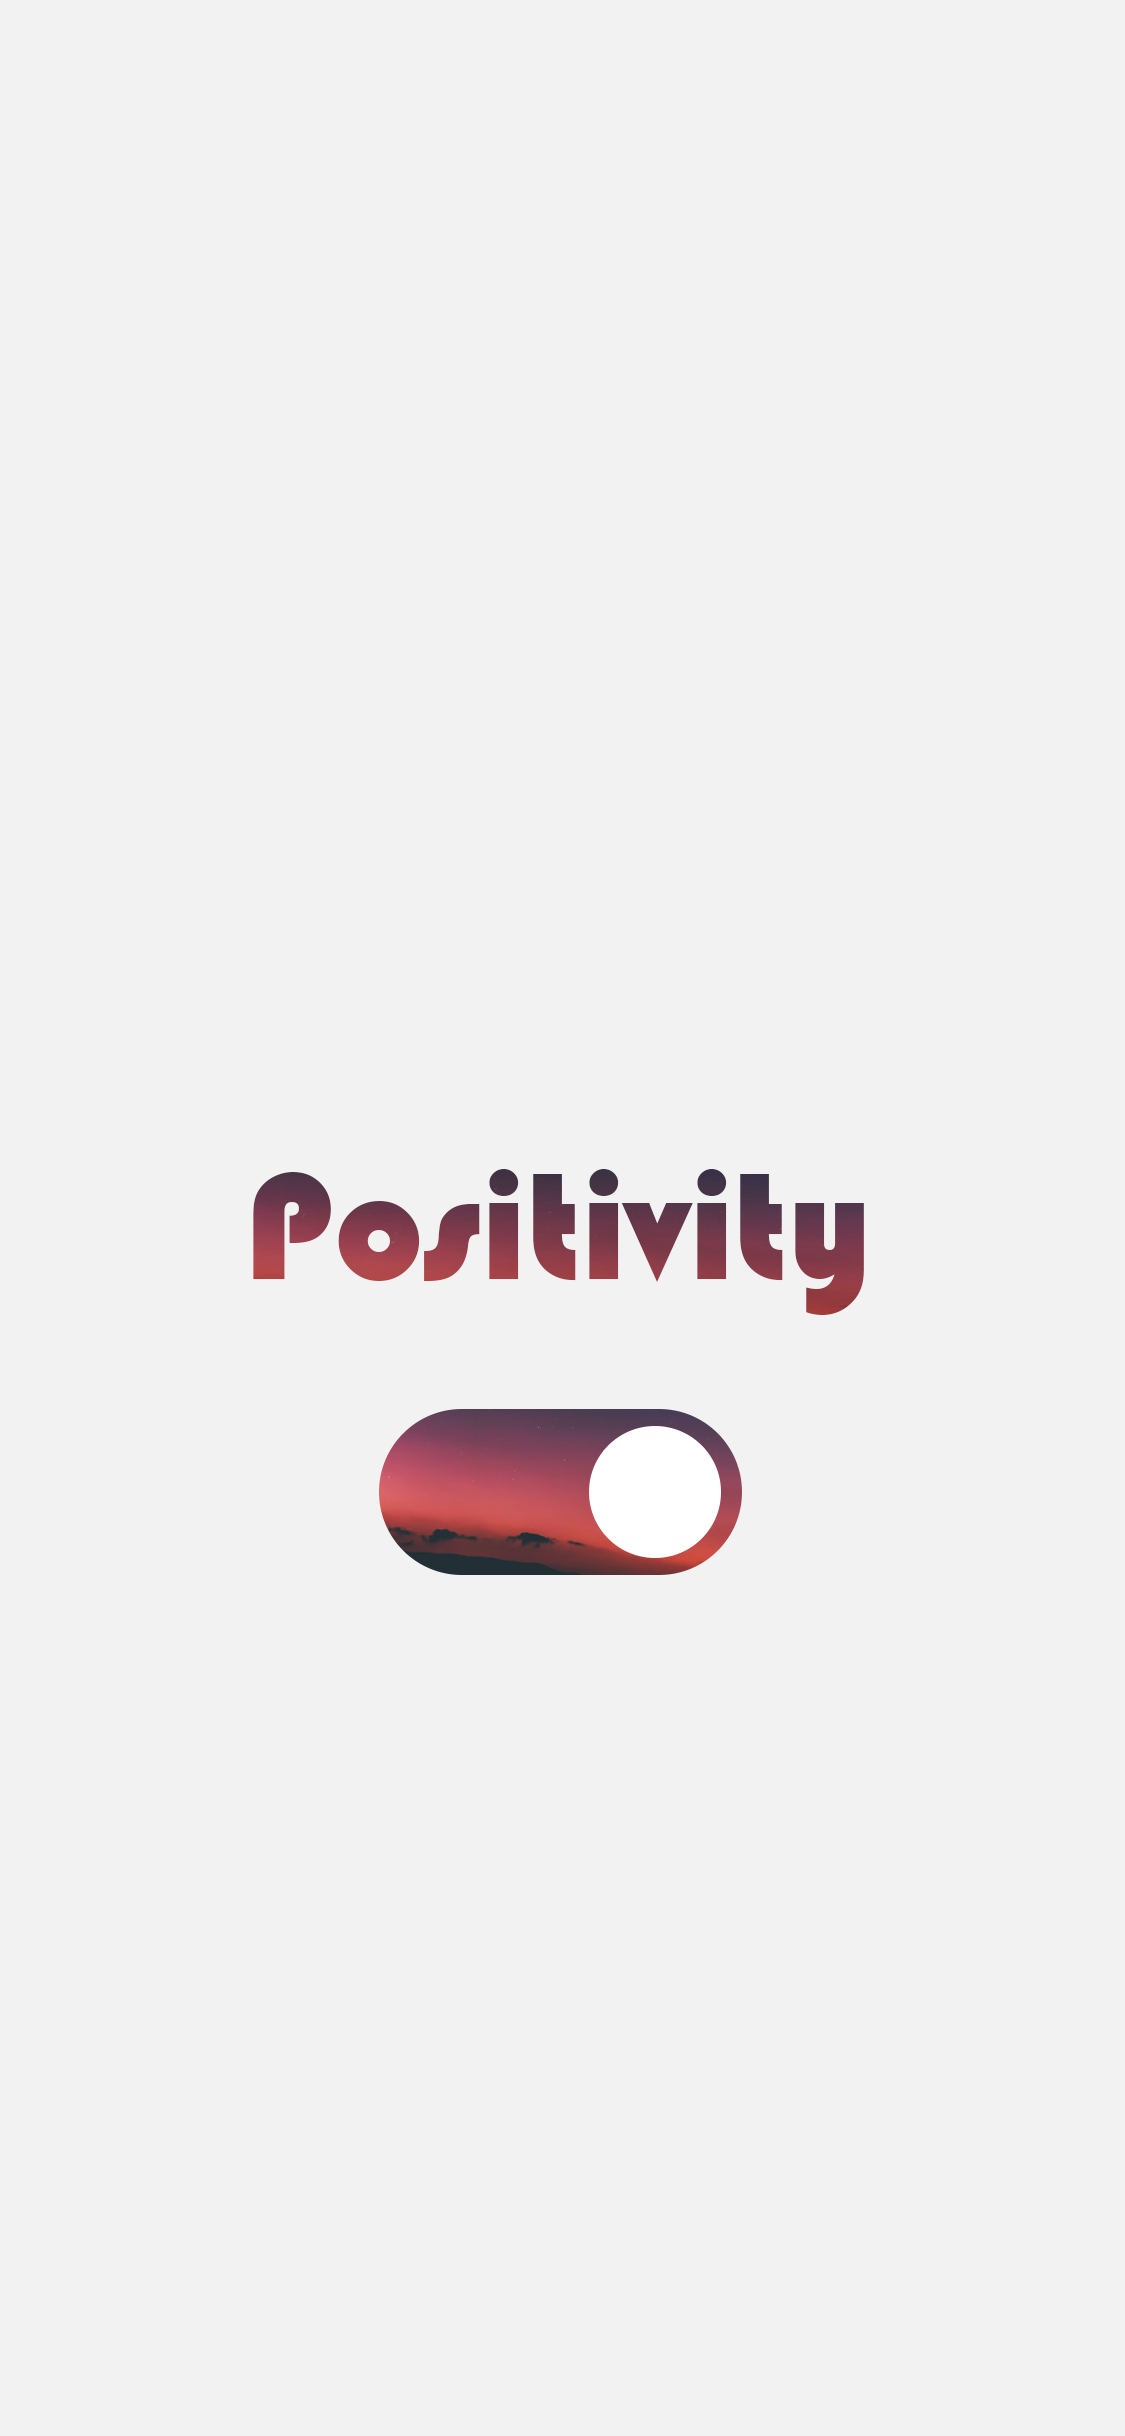 positivity wallpapers for phone